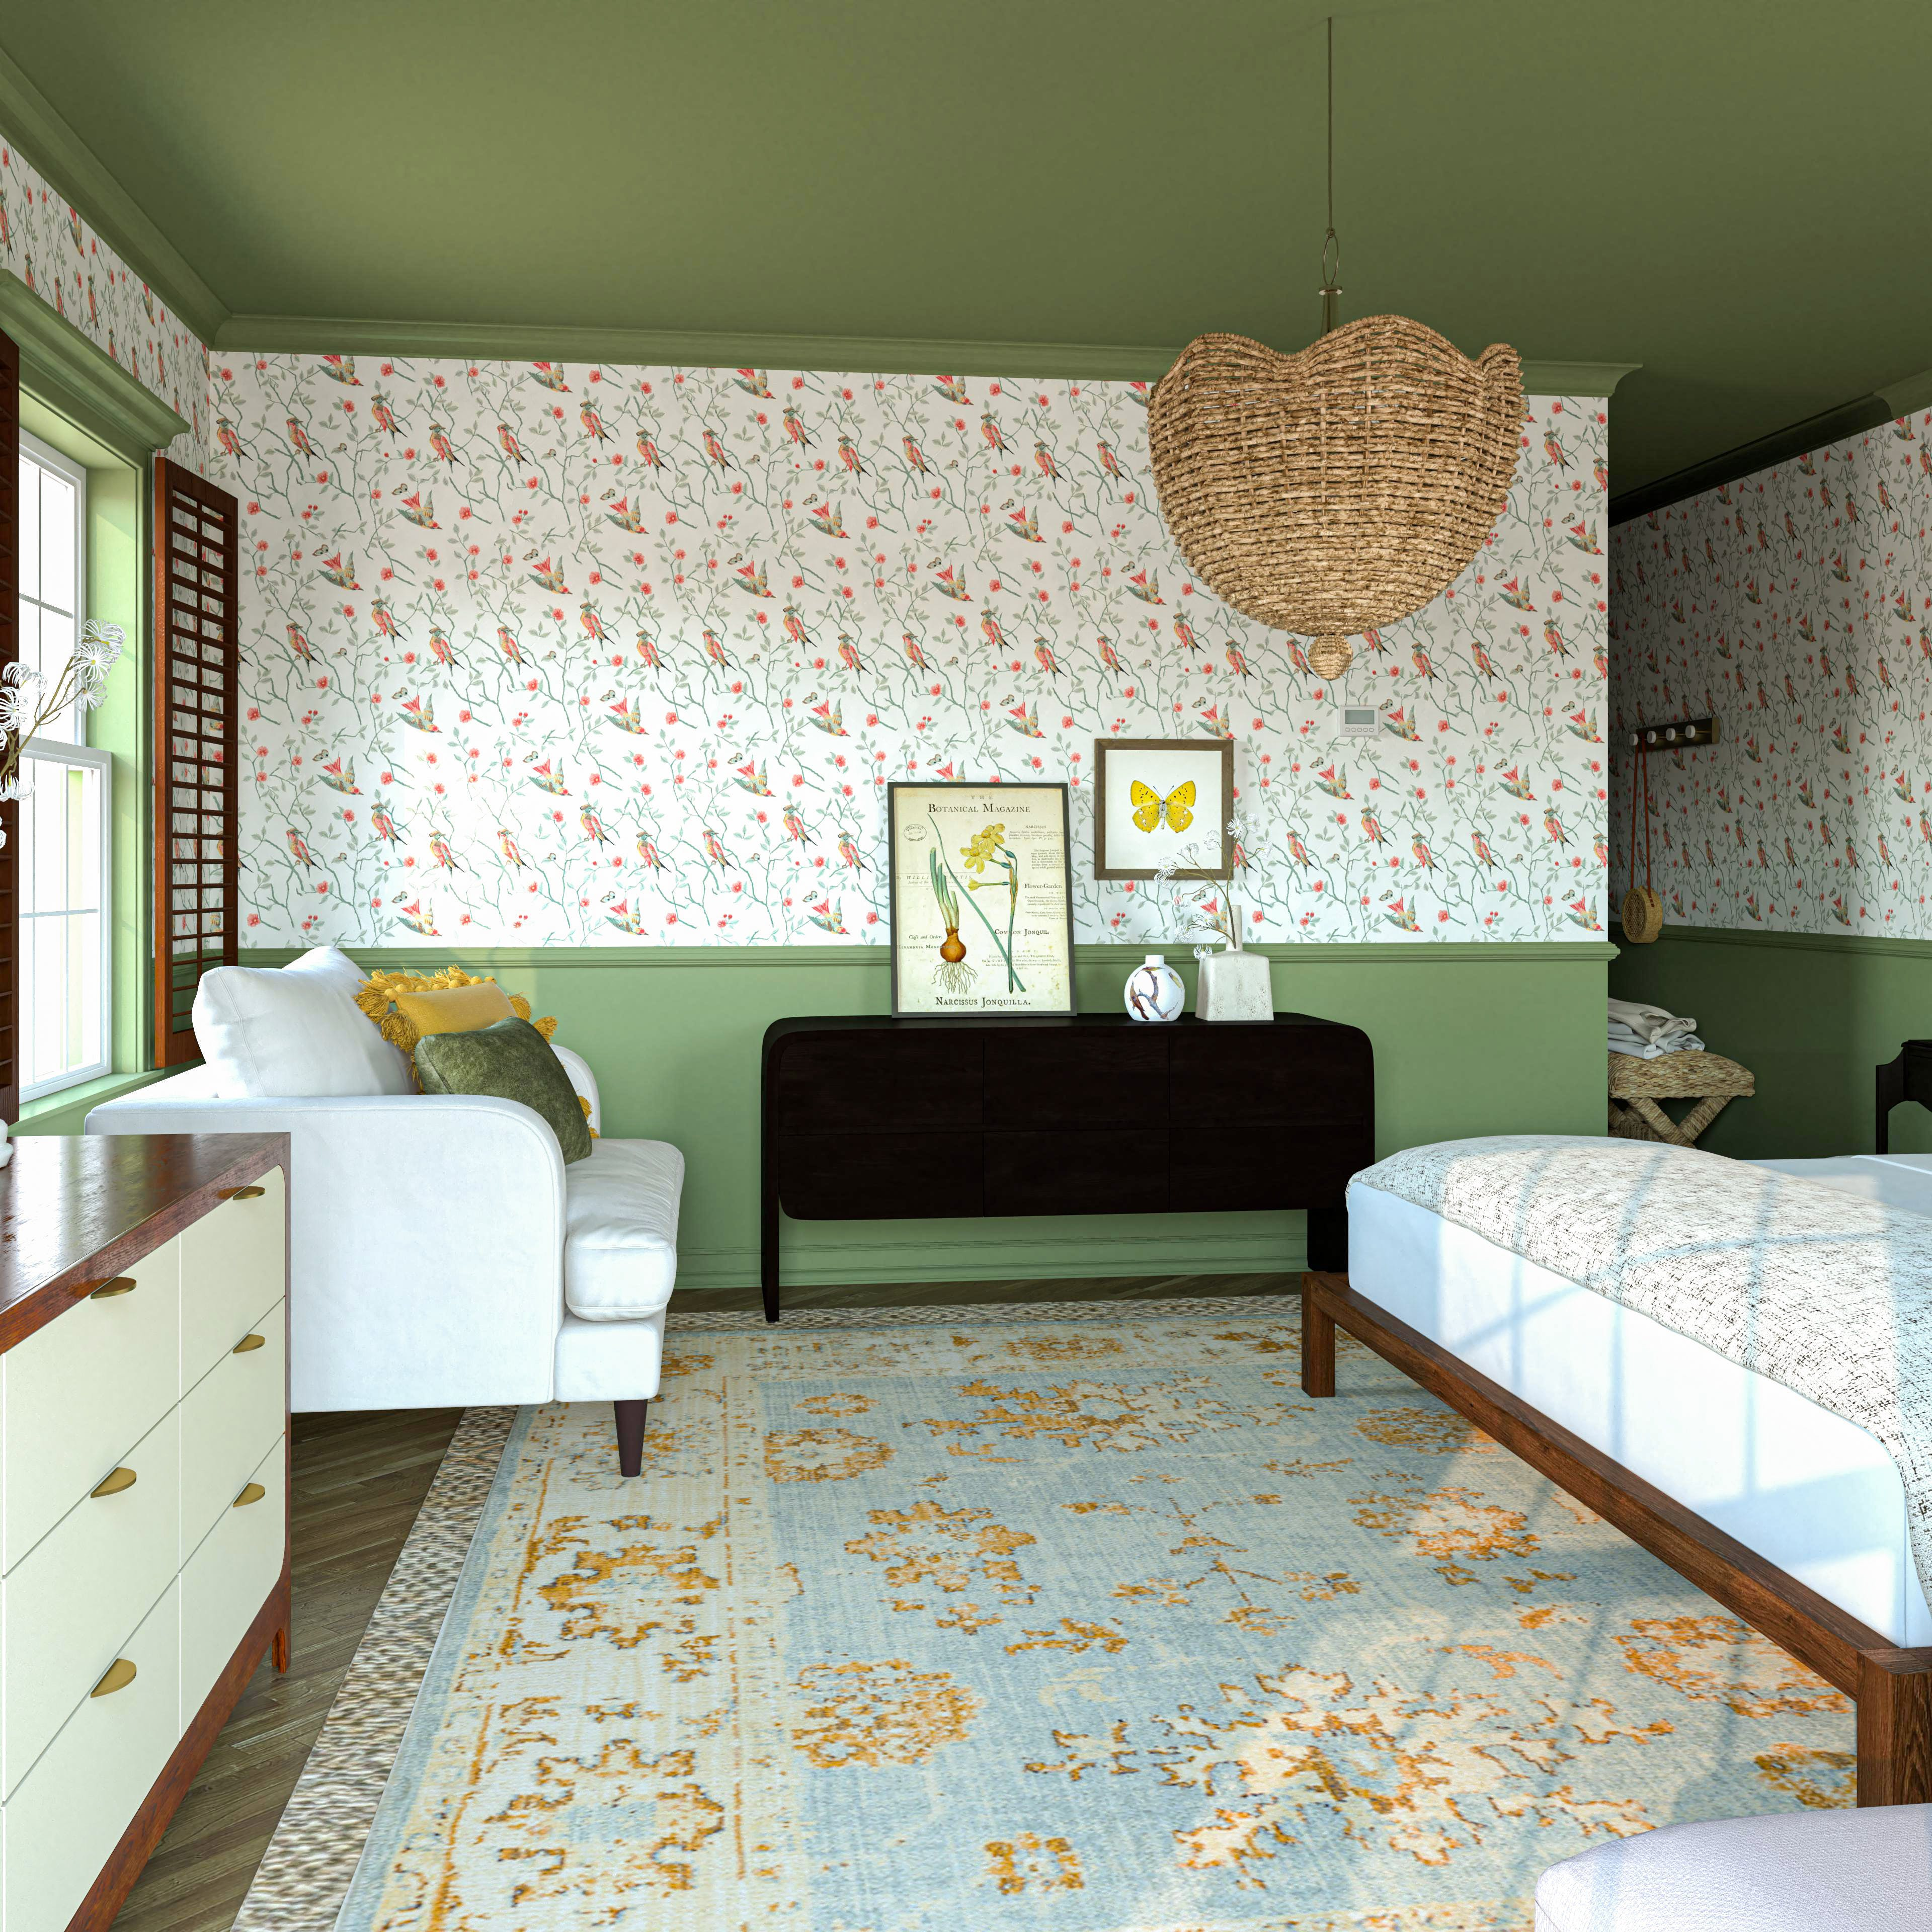 Additional Storage And Seating In This Charming Main Bedroom